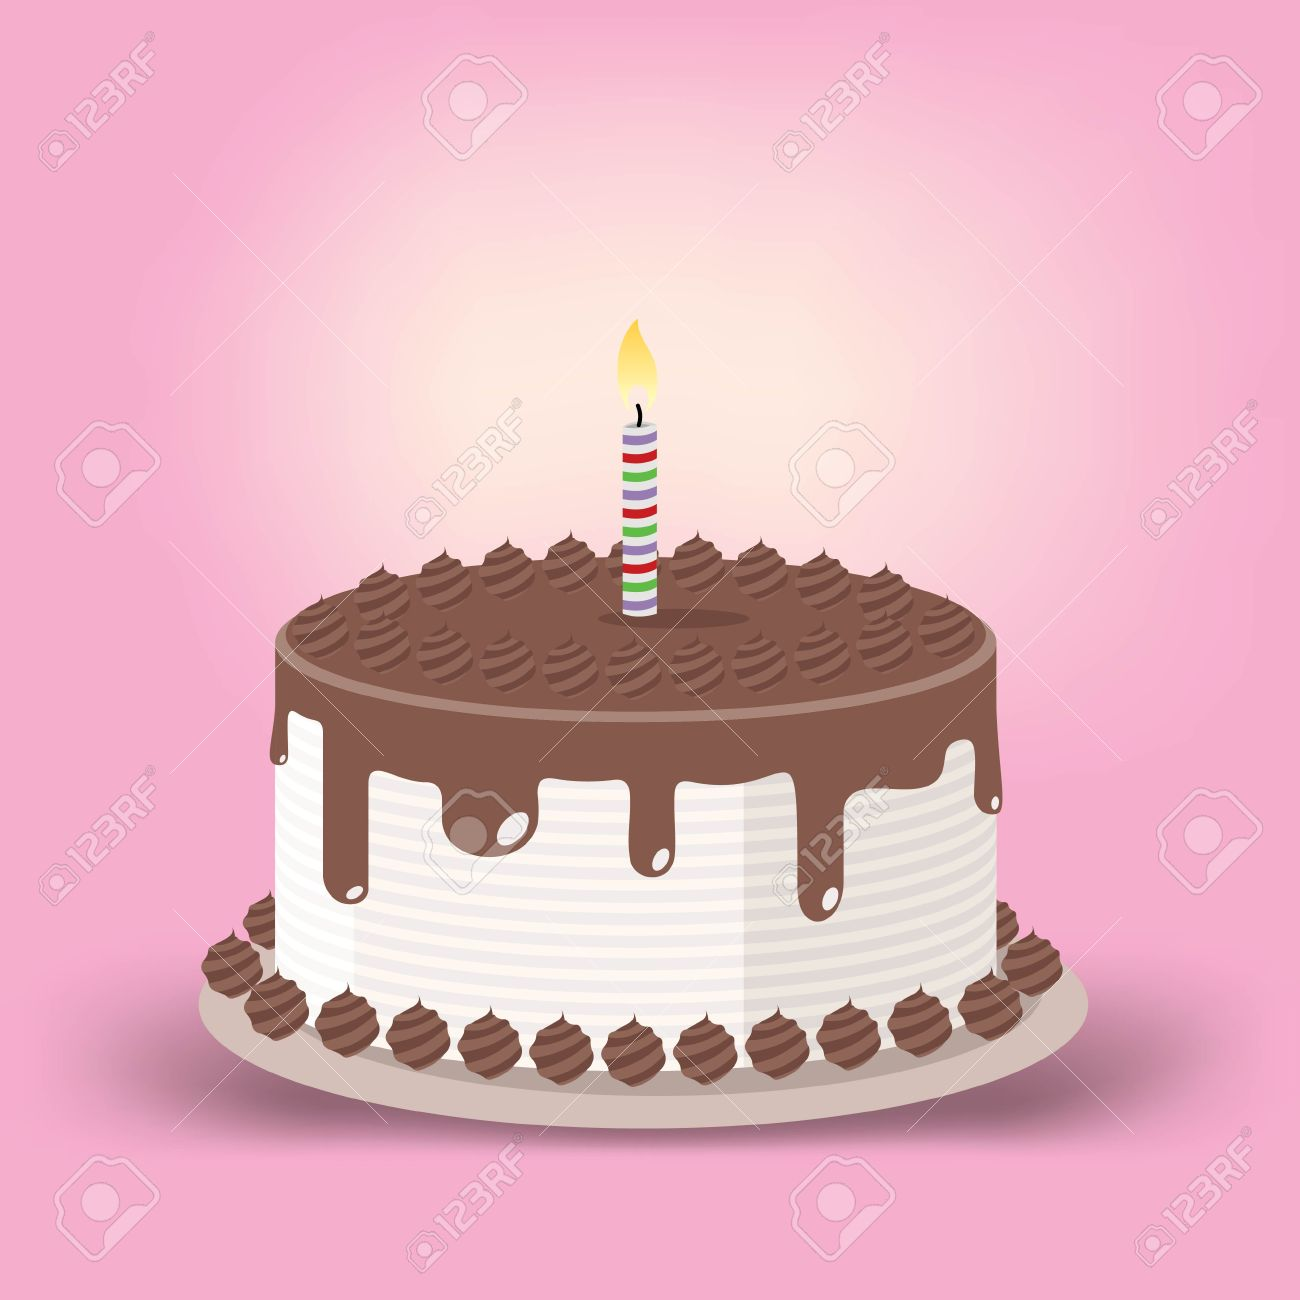 Birthday cake with one candle clipart image black and white download Birthday Cake With One Lit Candle Royalty Free Cliparts, Vectors ... image black and white download